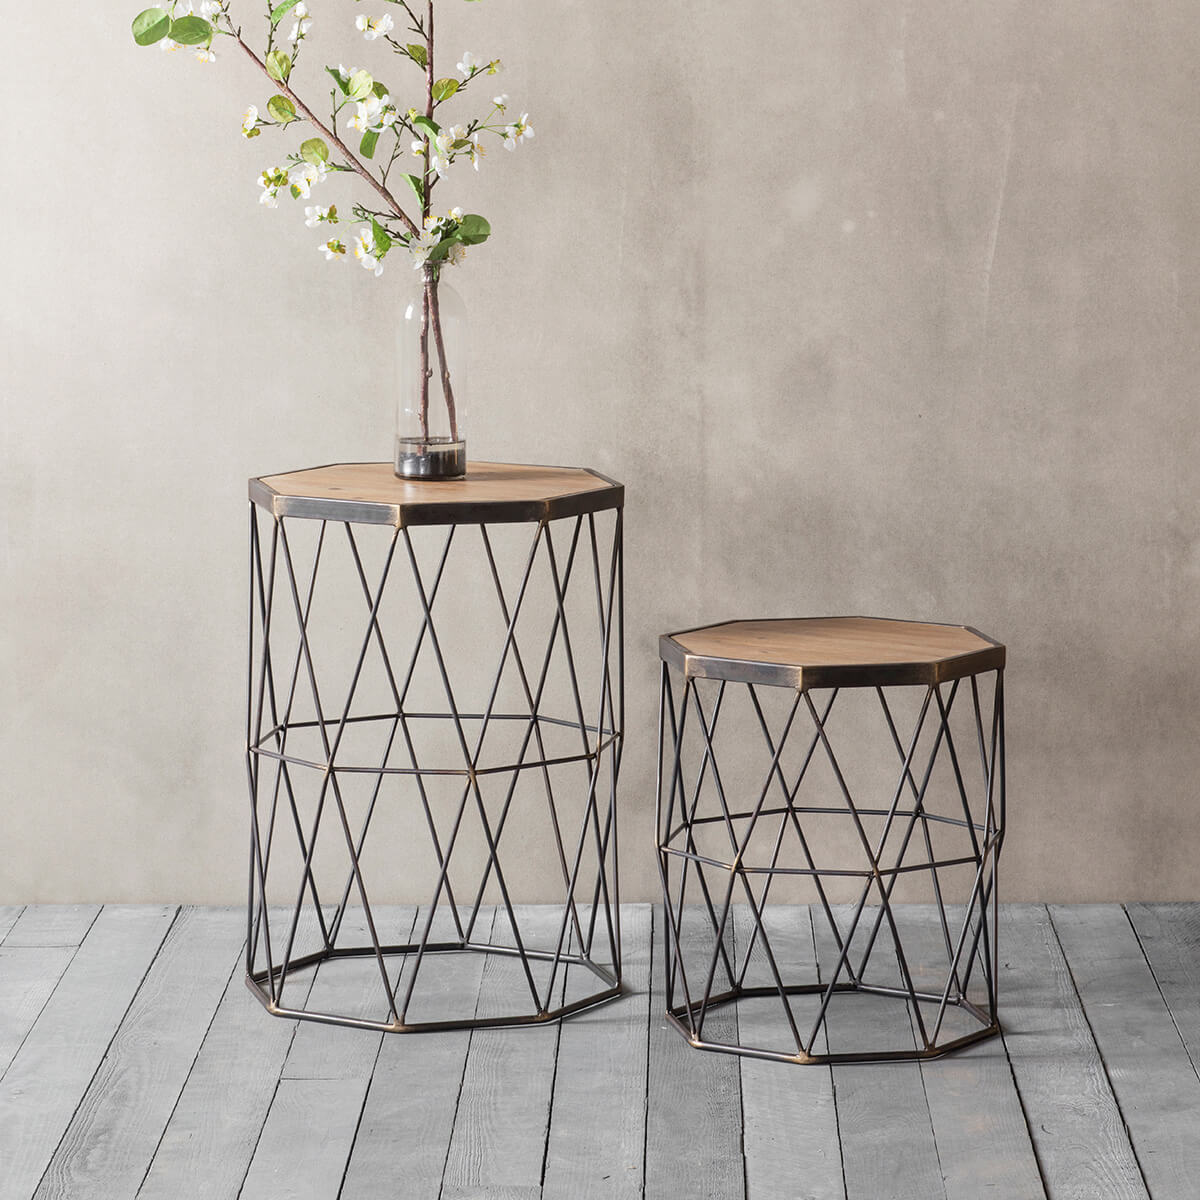 Wesley wire work side tables industrial style fads wesley wire work side tables greentooth Images